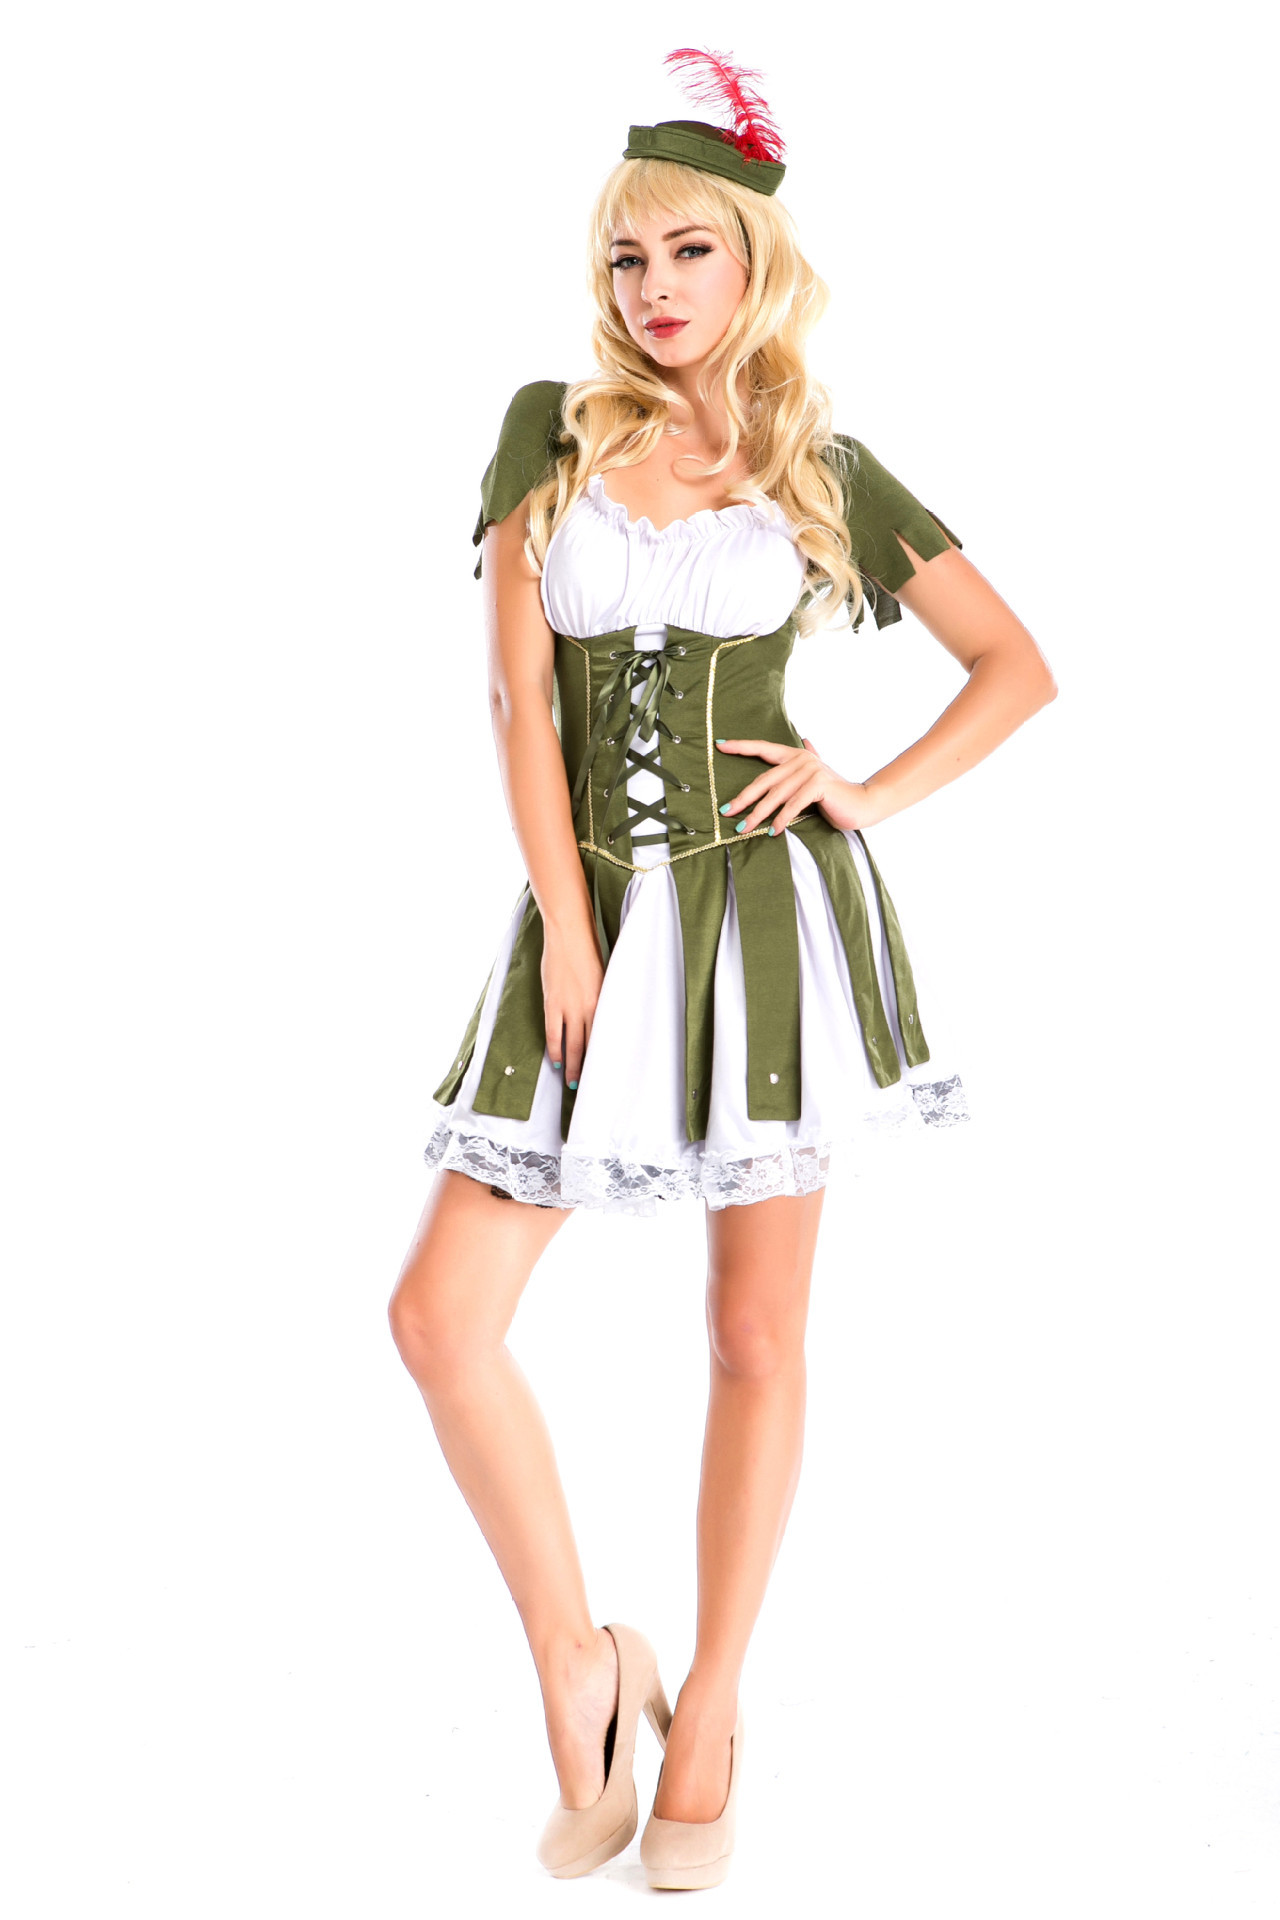 European and American game uniform Indian tribe Hunter costume role play costume for Halloween party Pirate Costume girl